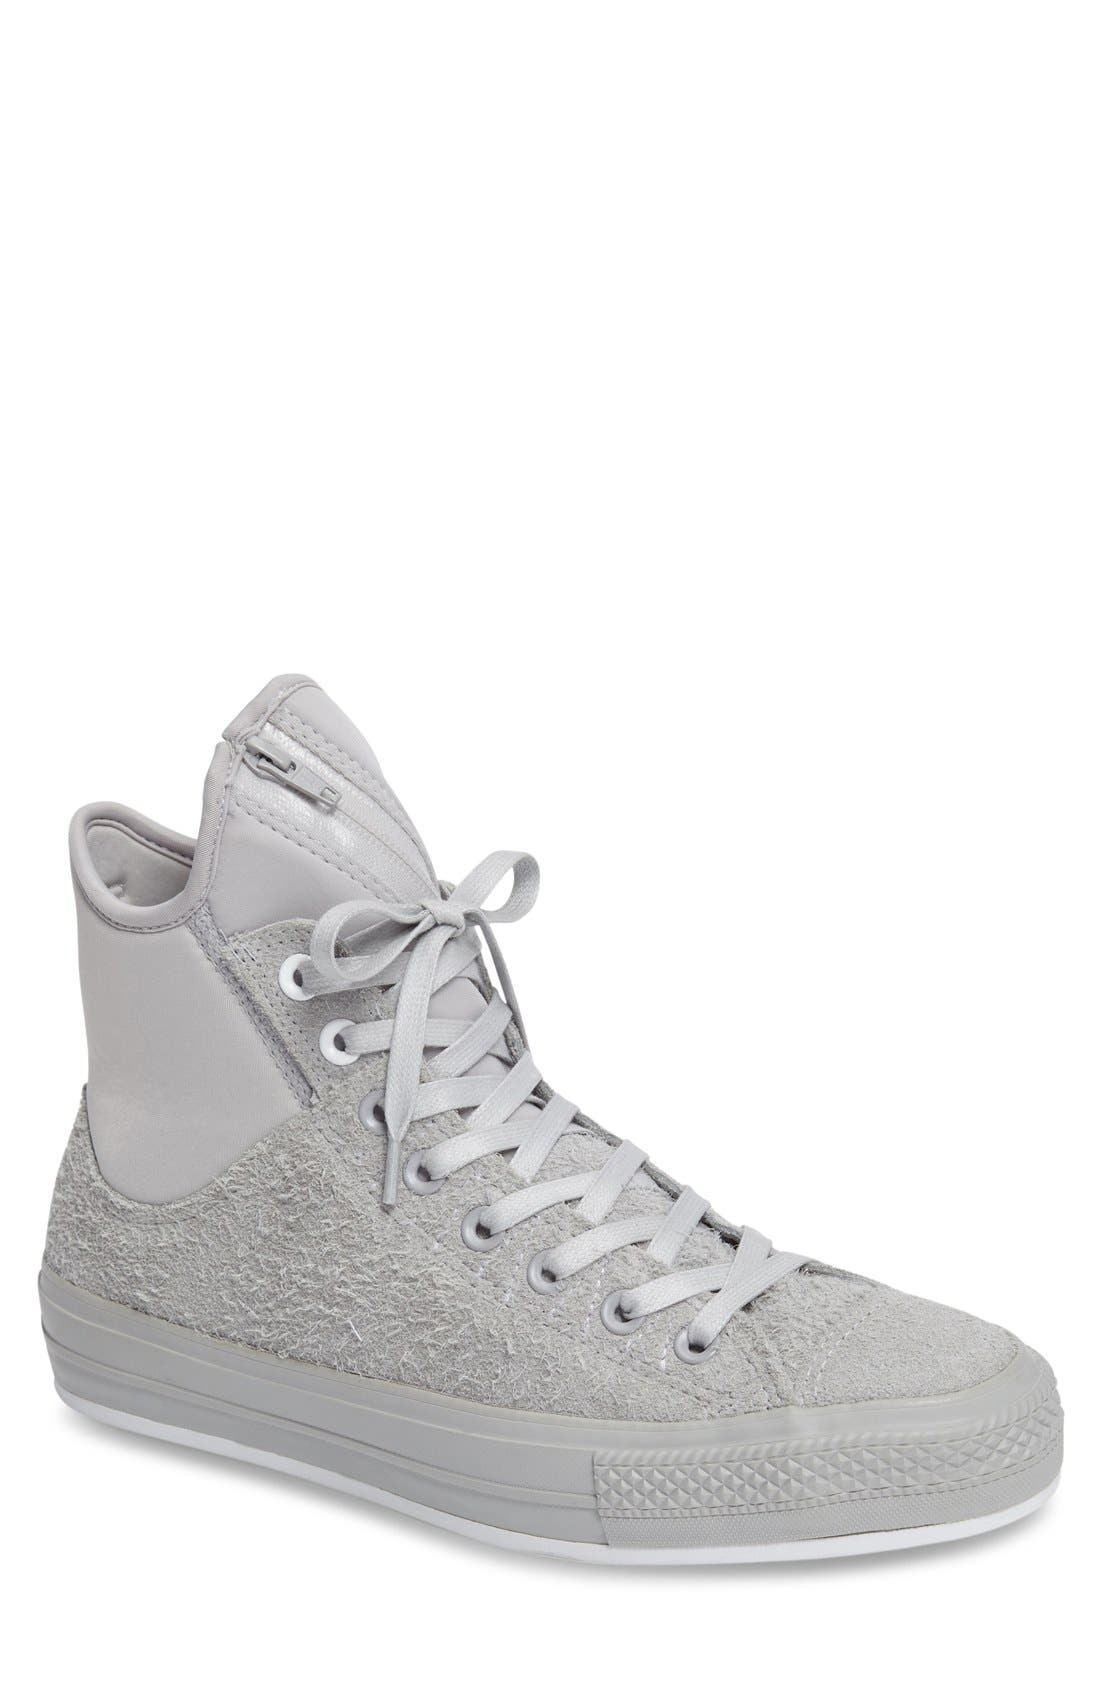 Alternate Image 1 Selected - Converse Chuck Taylor® All Star® MA-1 SE High Top Sneaker (Men)